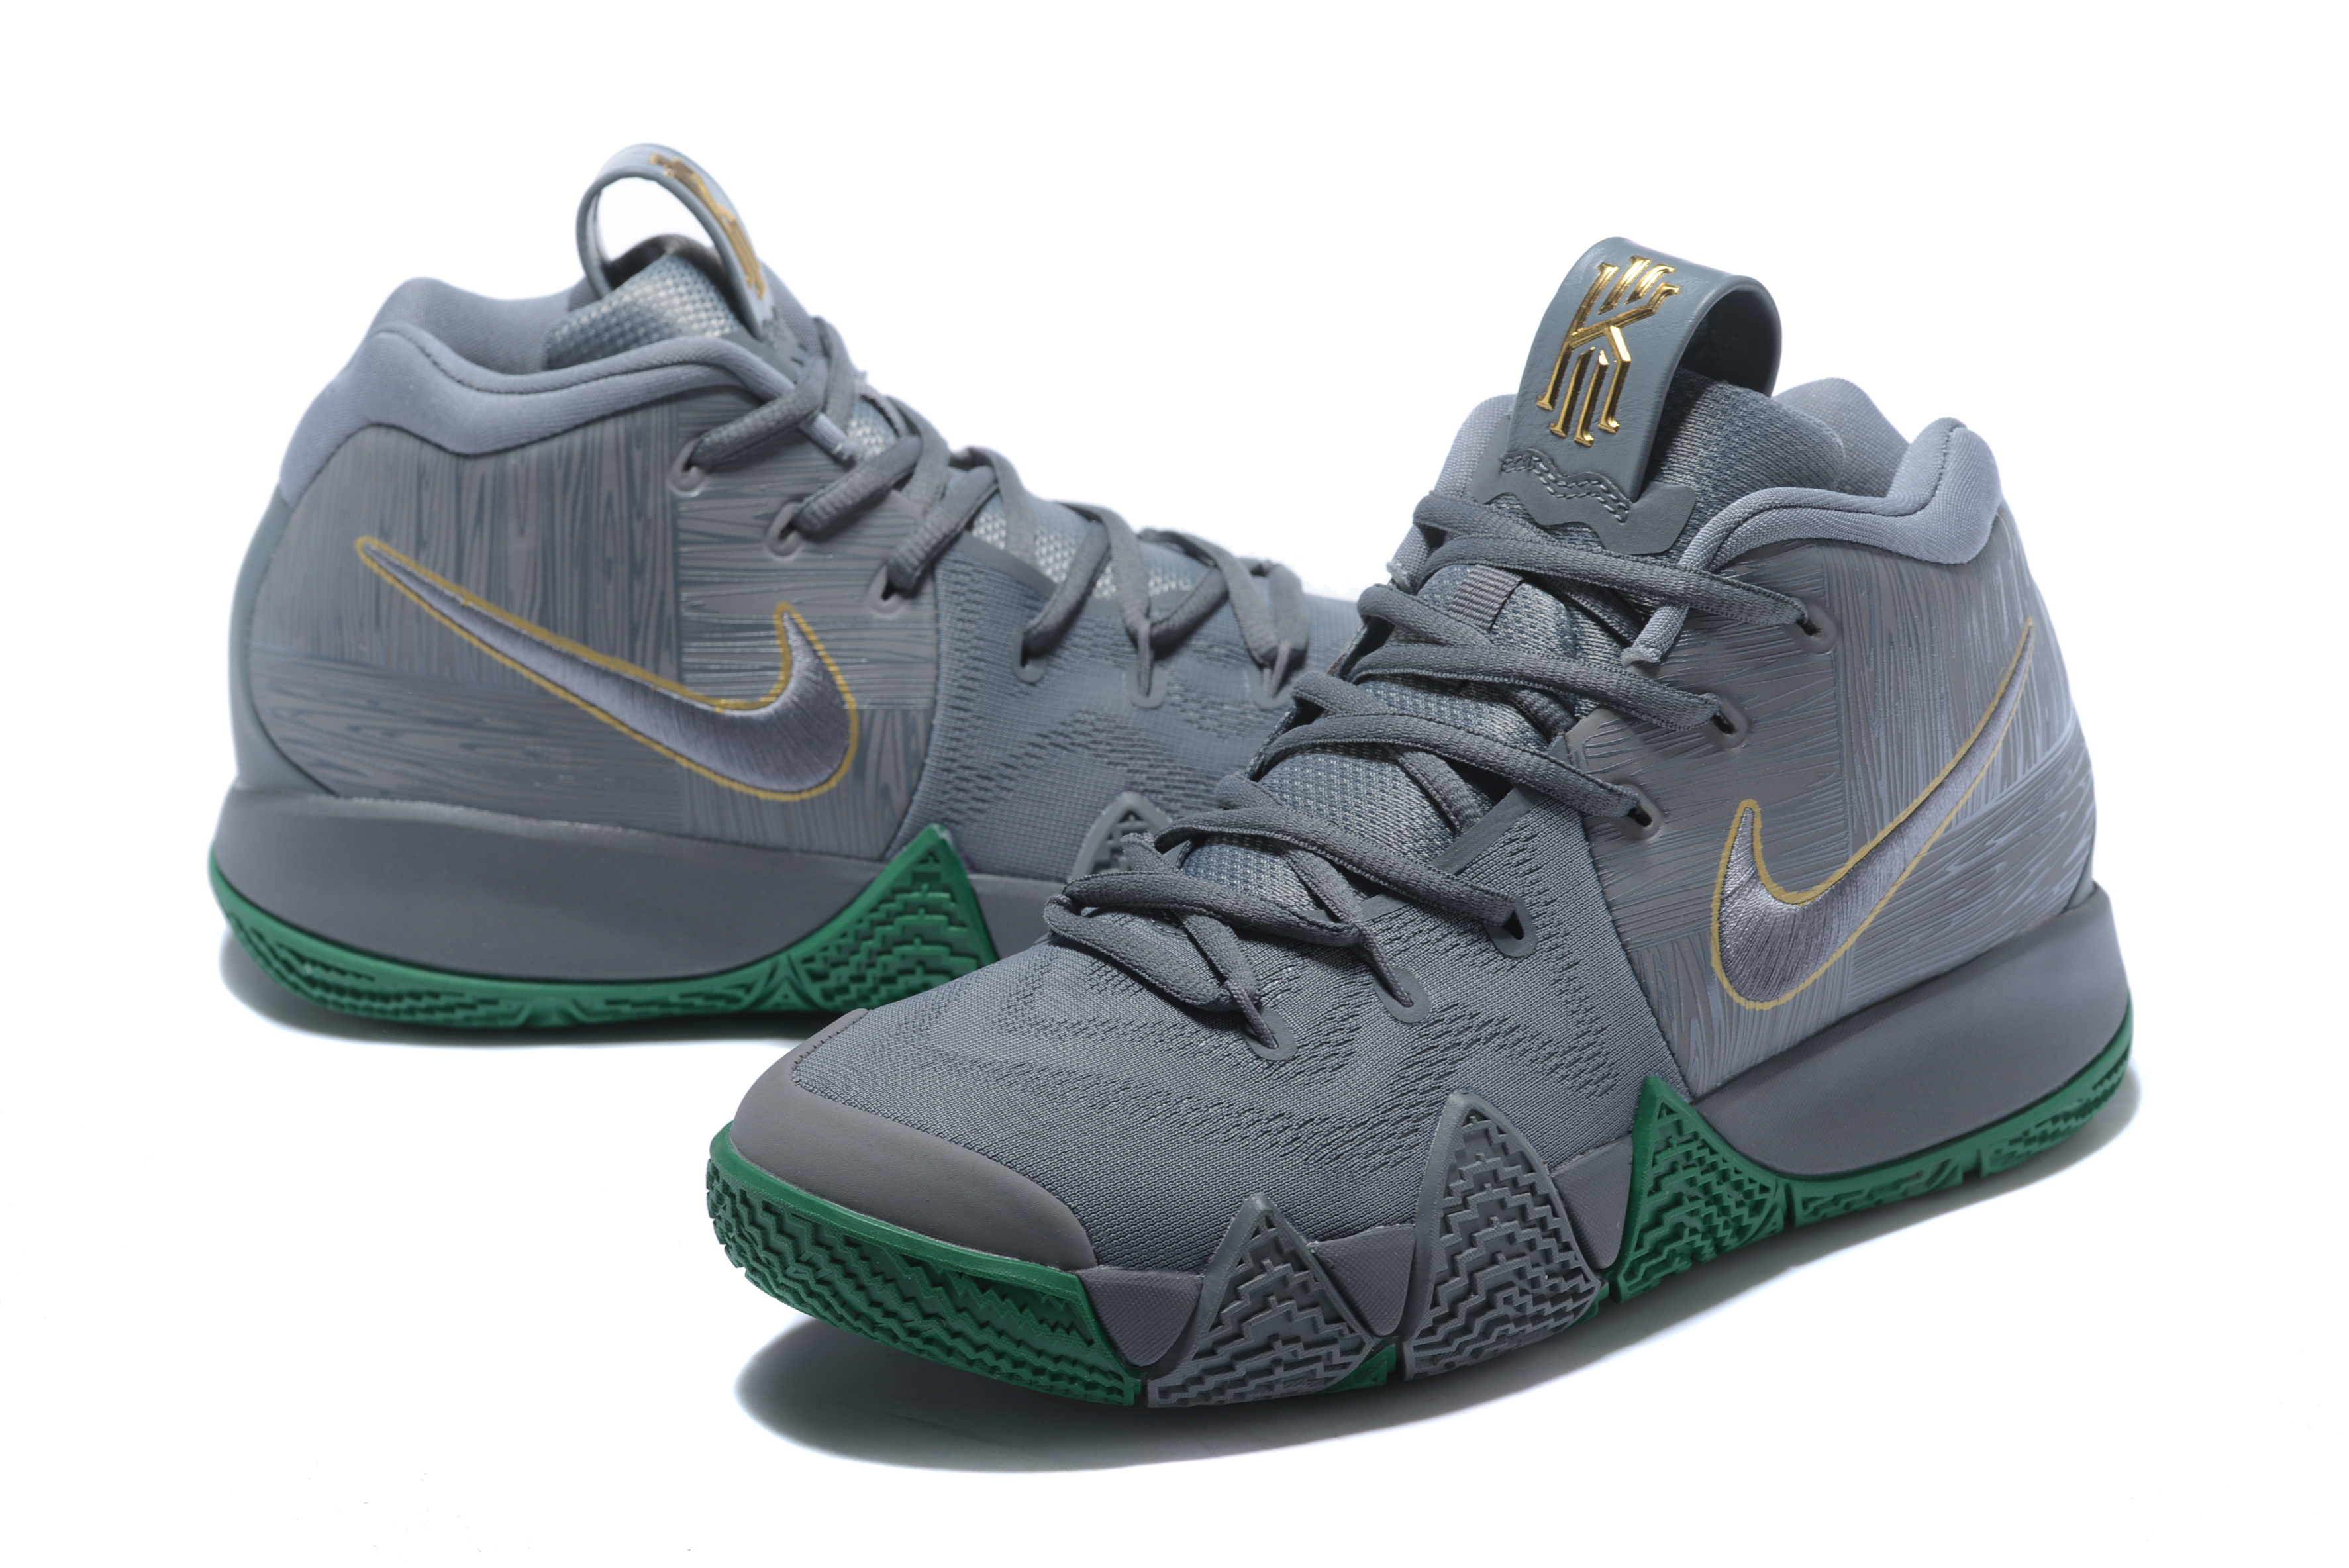 2018 Nike Kyrie Irving 4 Grey Green Shoes